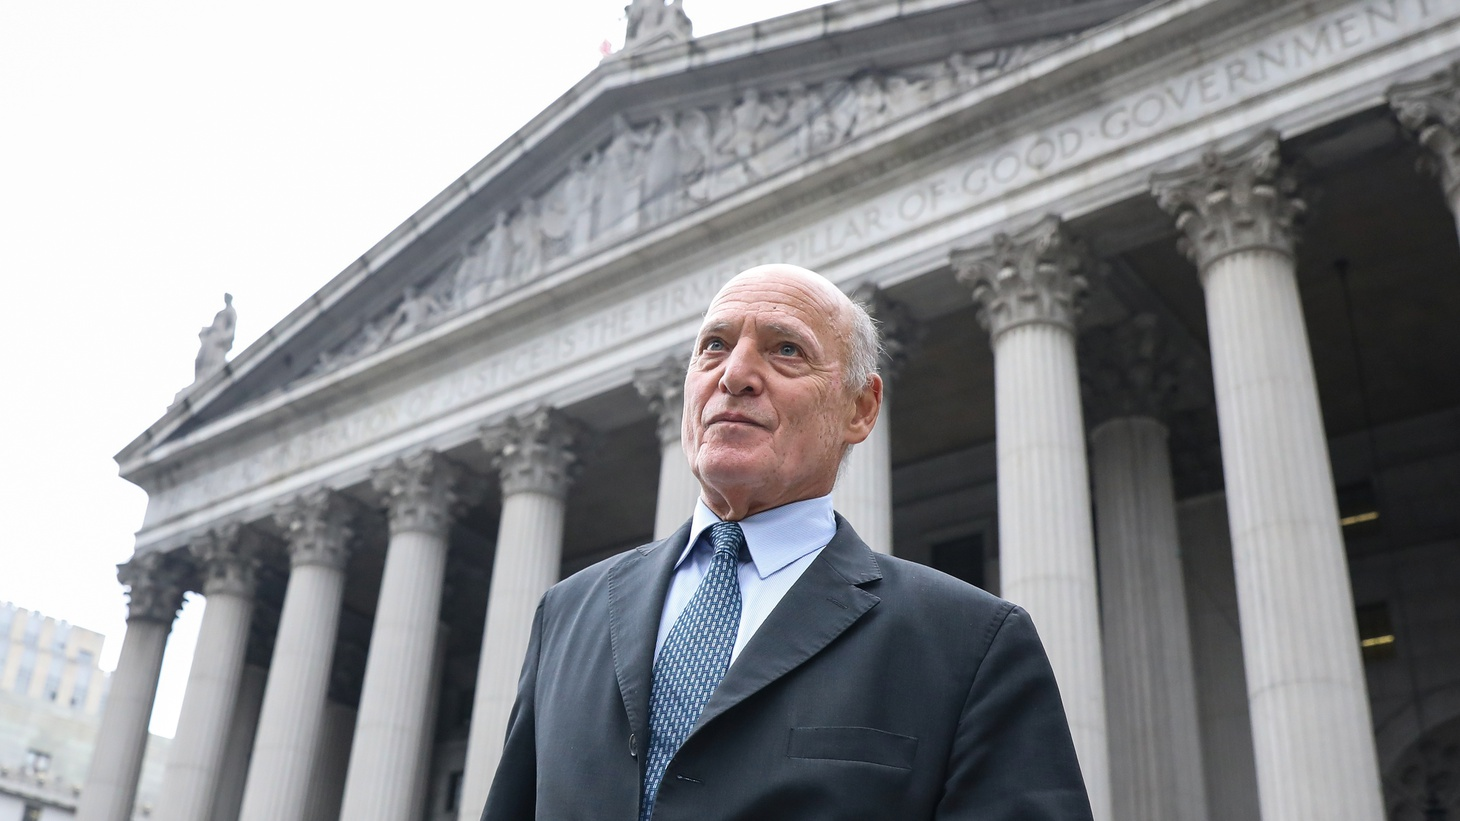 Attorney Martin Weinberg walks following a bail hearing for his client Jeffrey Epstein's sex trafficking case, from the Southern District of New York federal courthouse in New York City, New York, U.S. July 18, 2019.